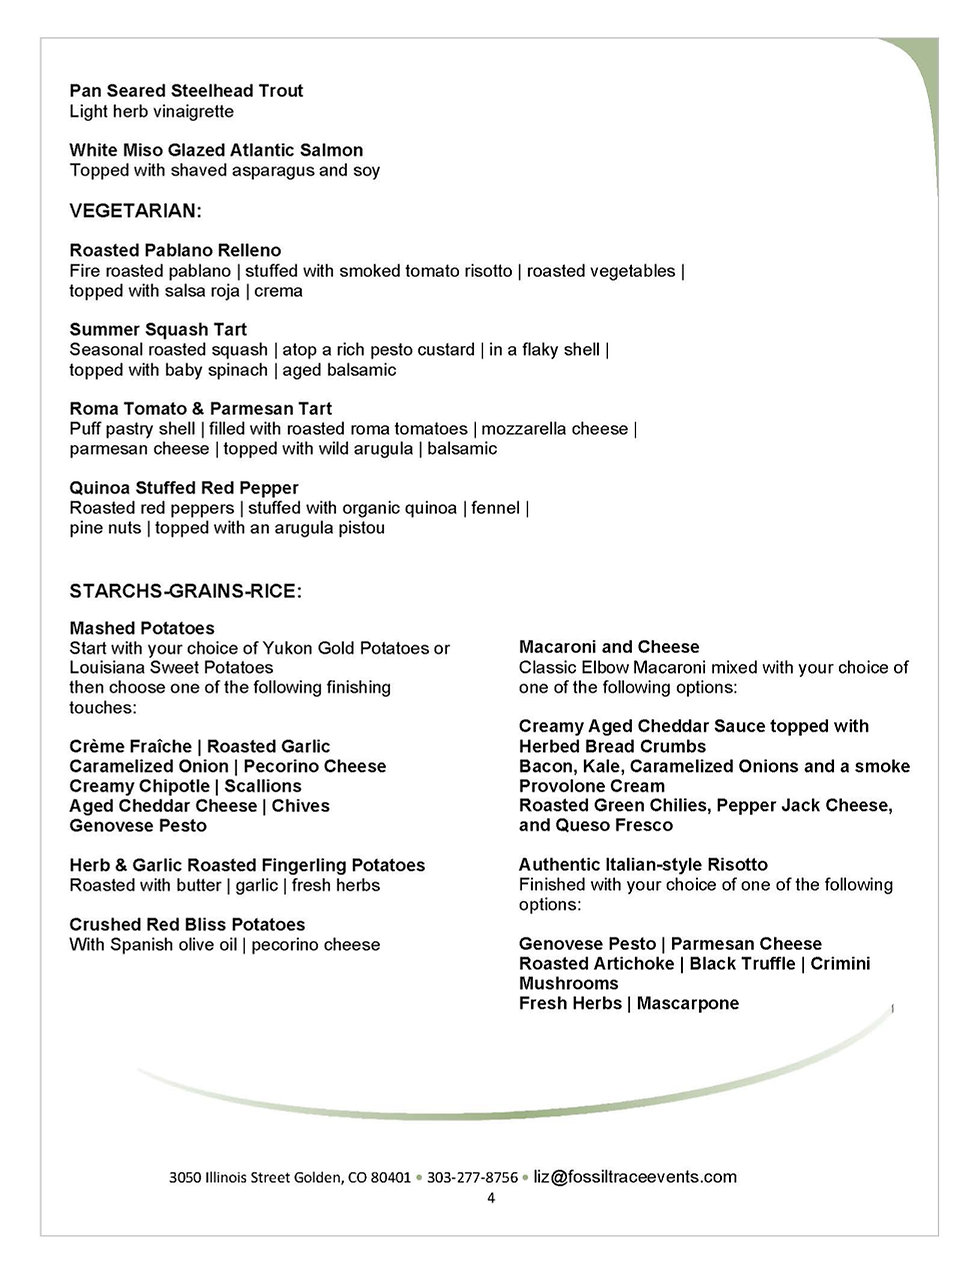 Wedding and Special Event Menus_Page_4.j